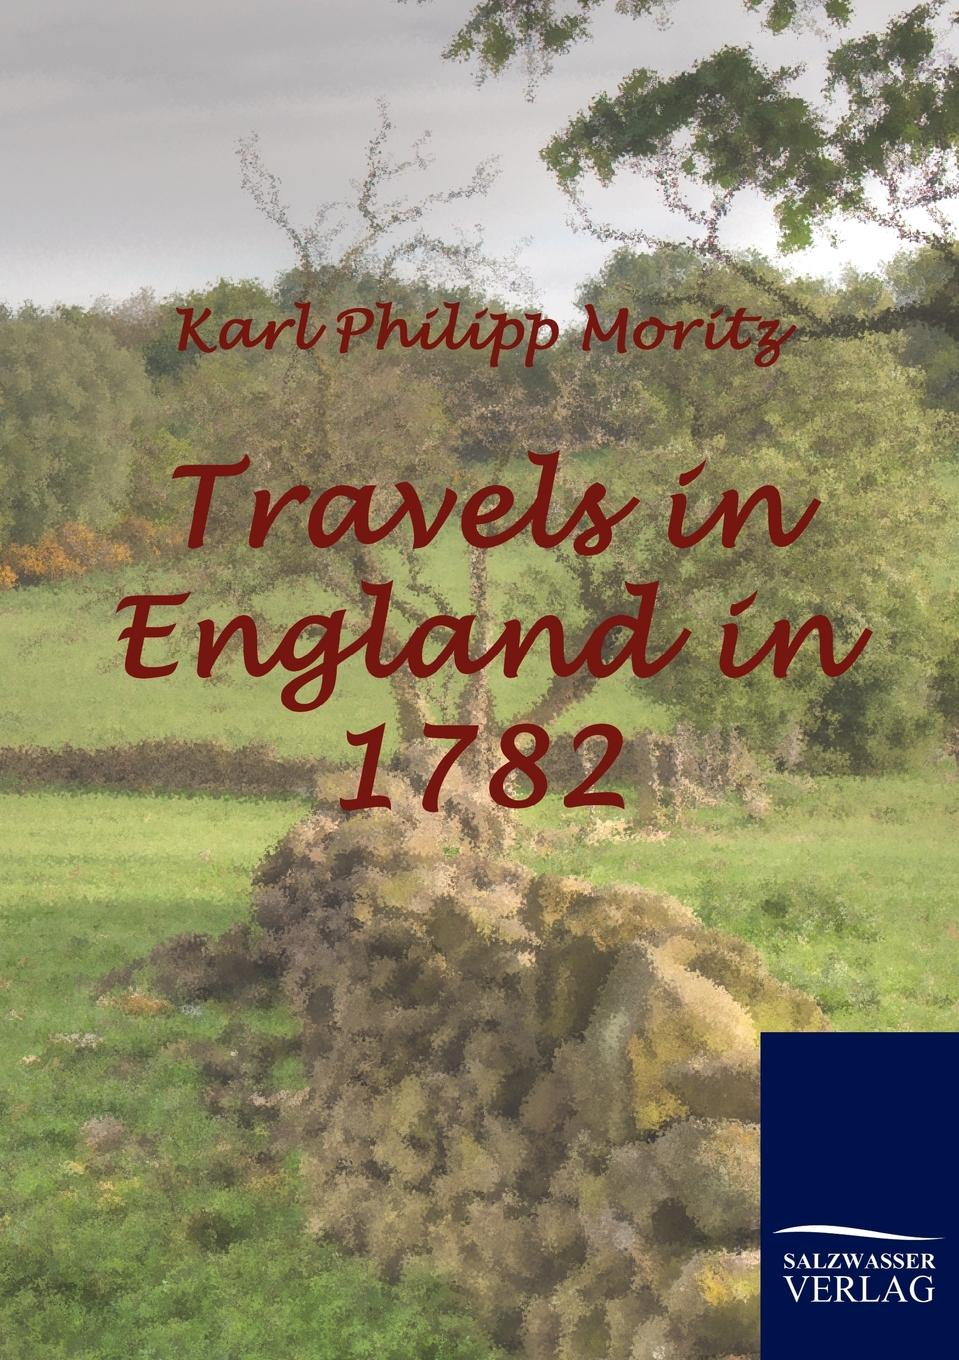 Karl Philipp Moritz Travels in England in 1782